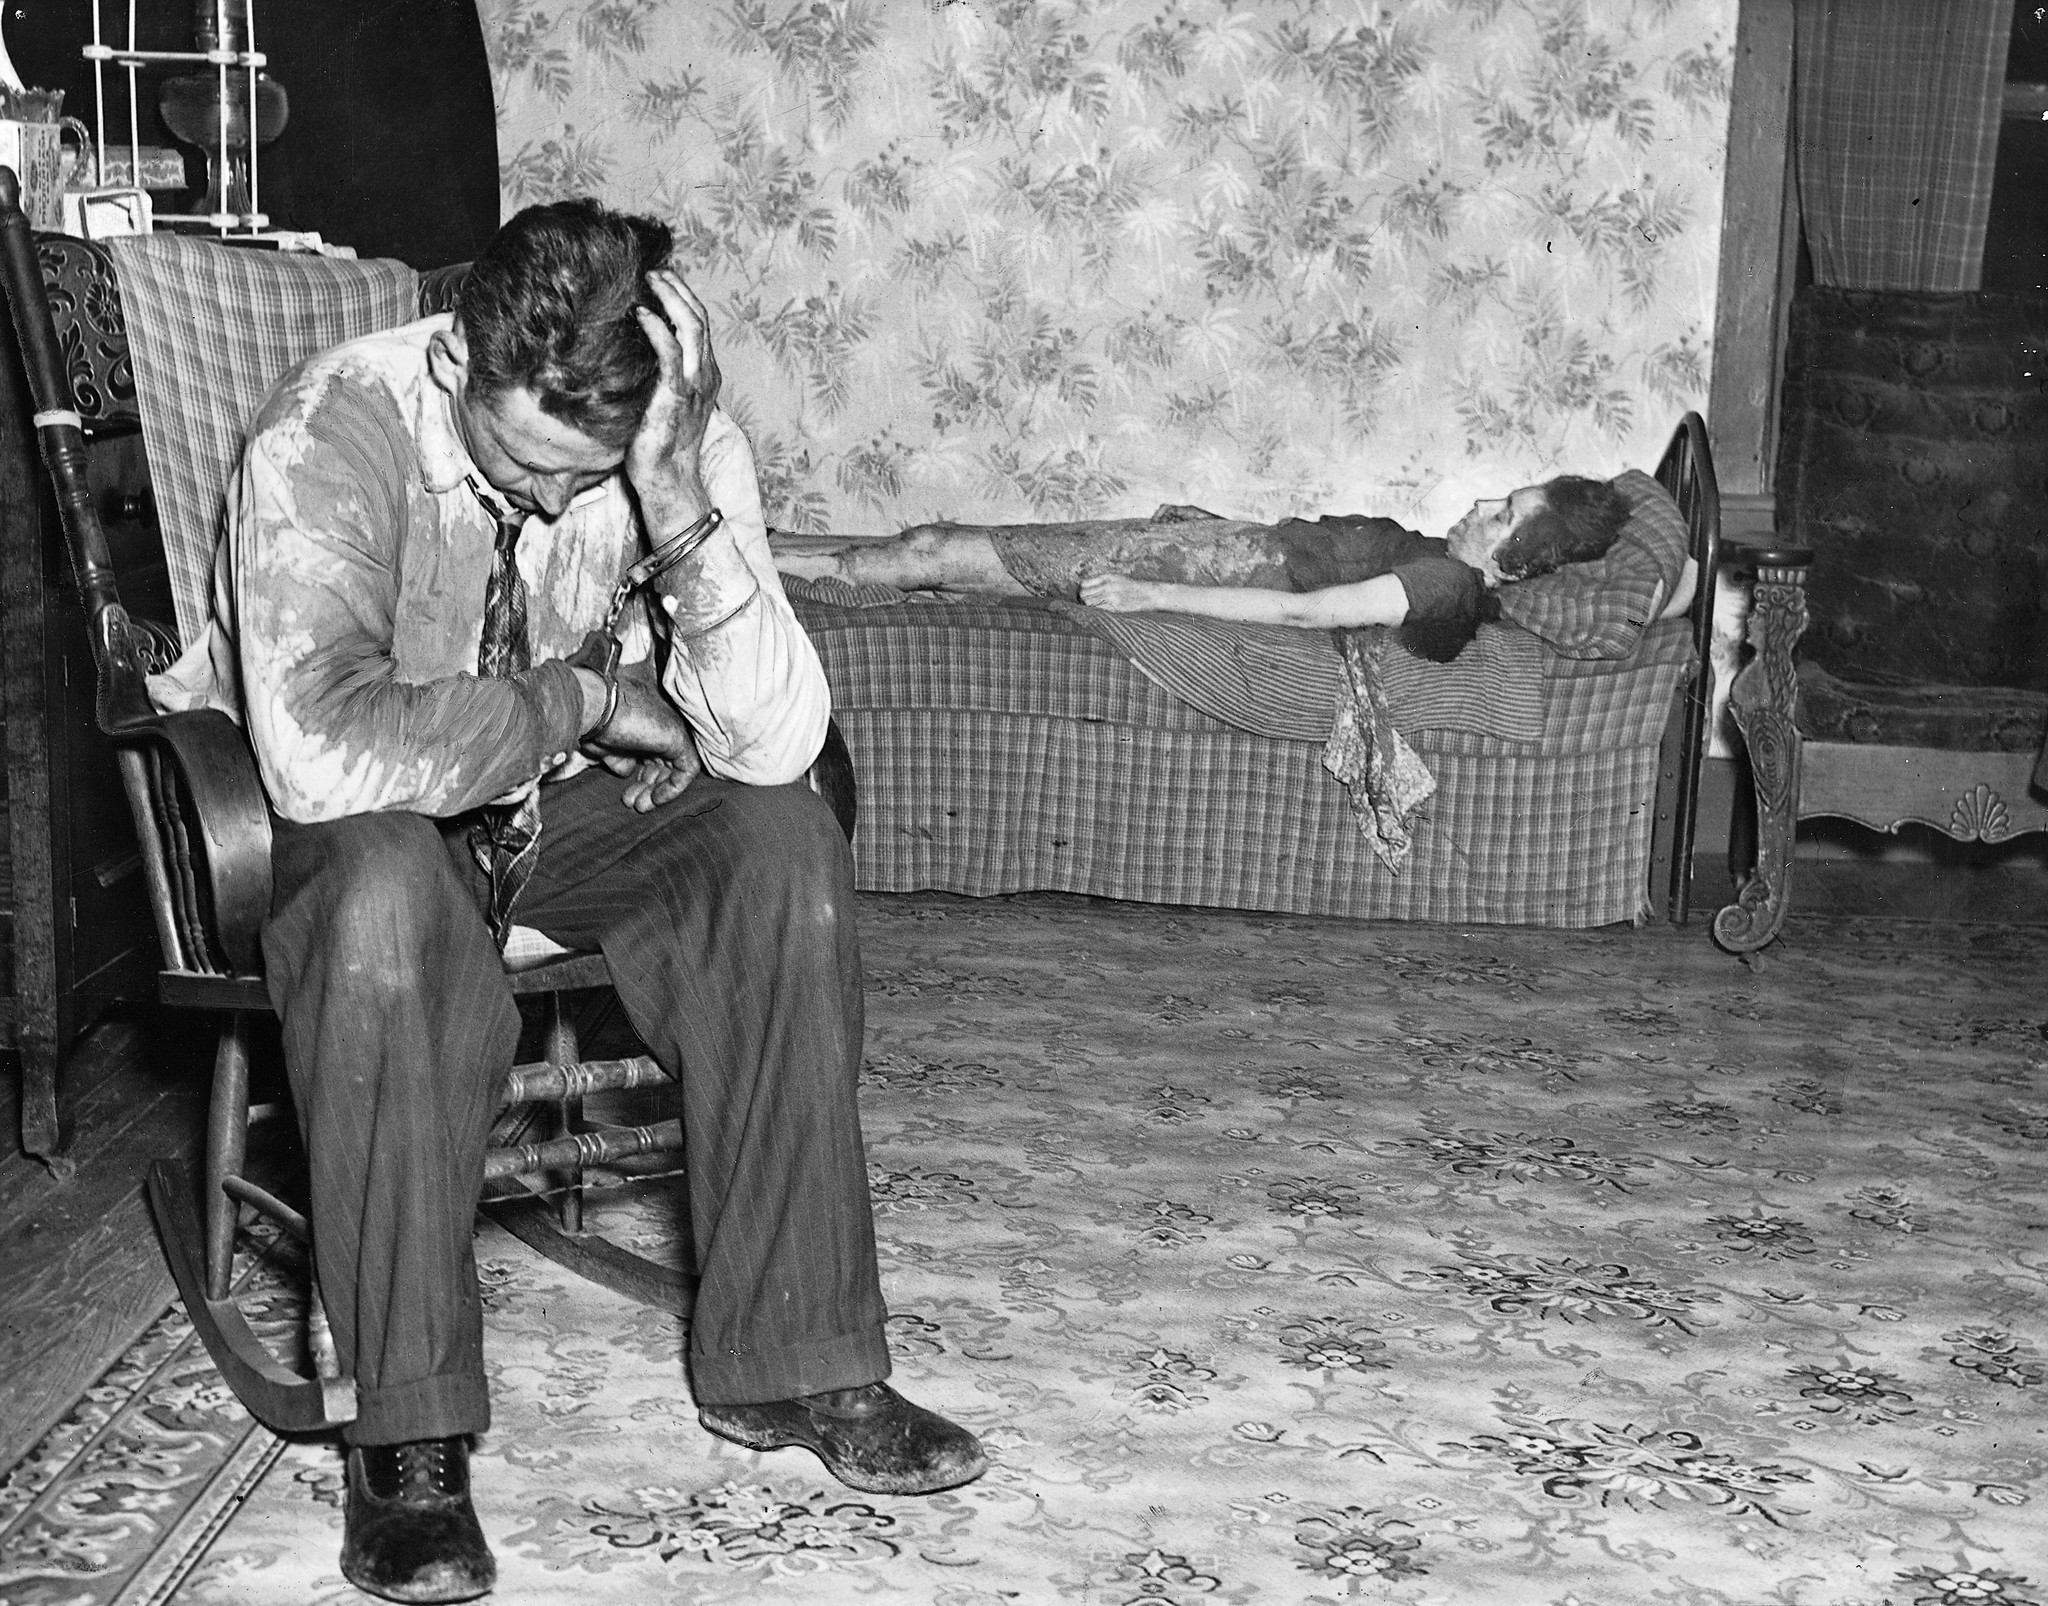 JUSTICE STORY: The tragic tale behind the haunting photo of a slain wife and her sorry husband